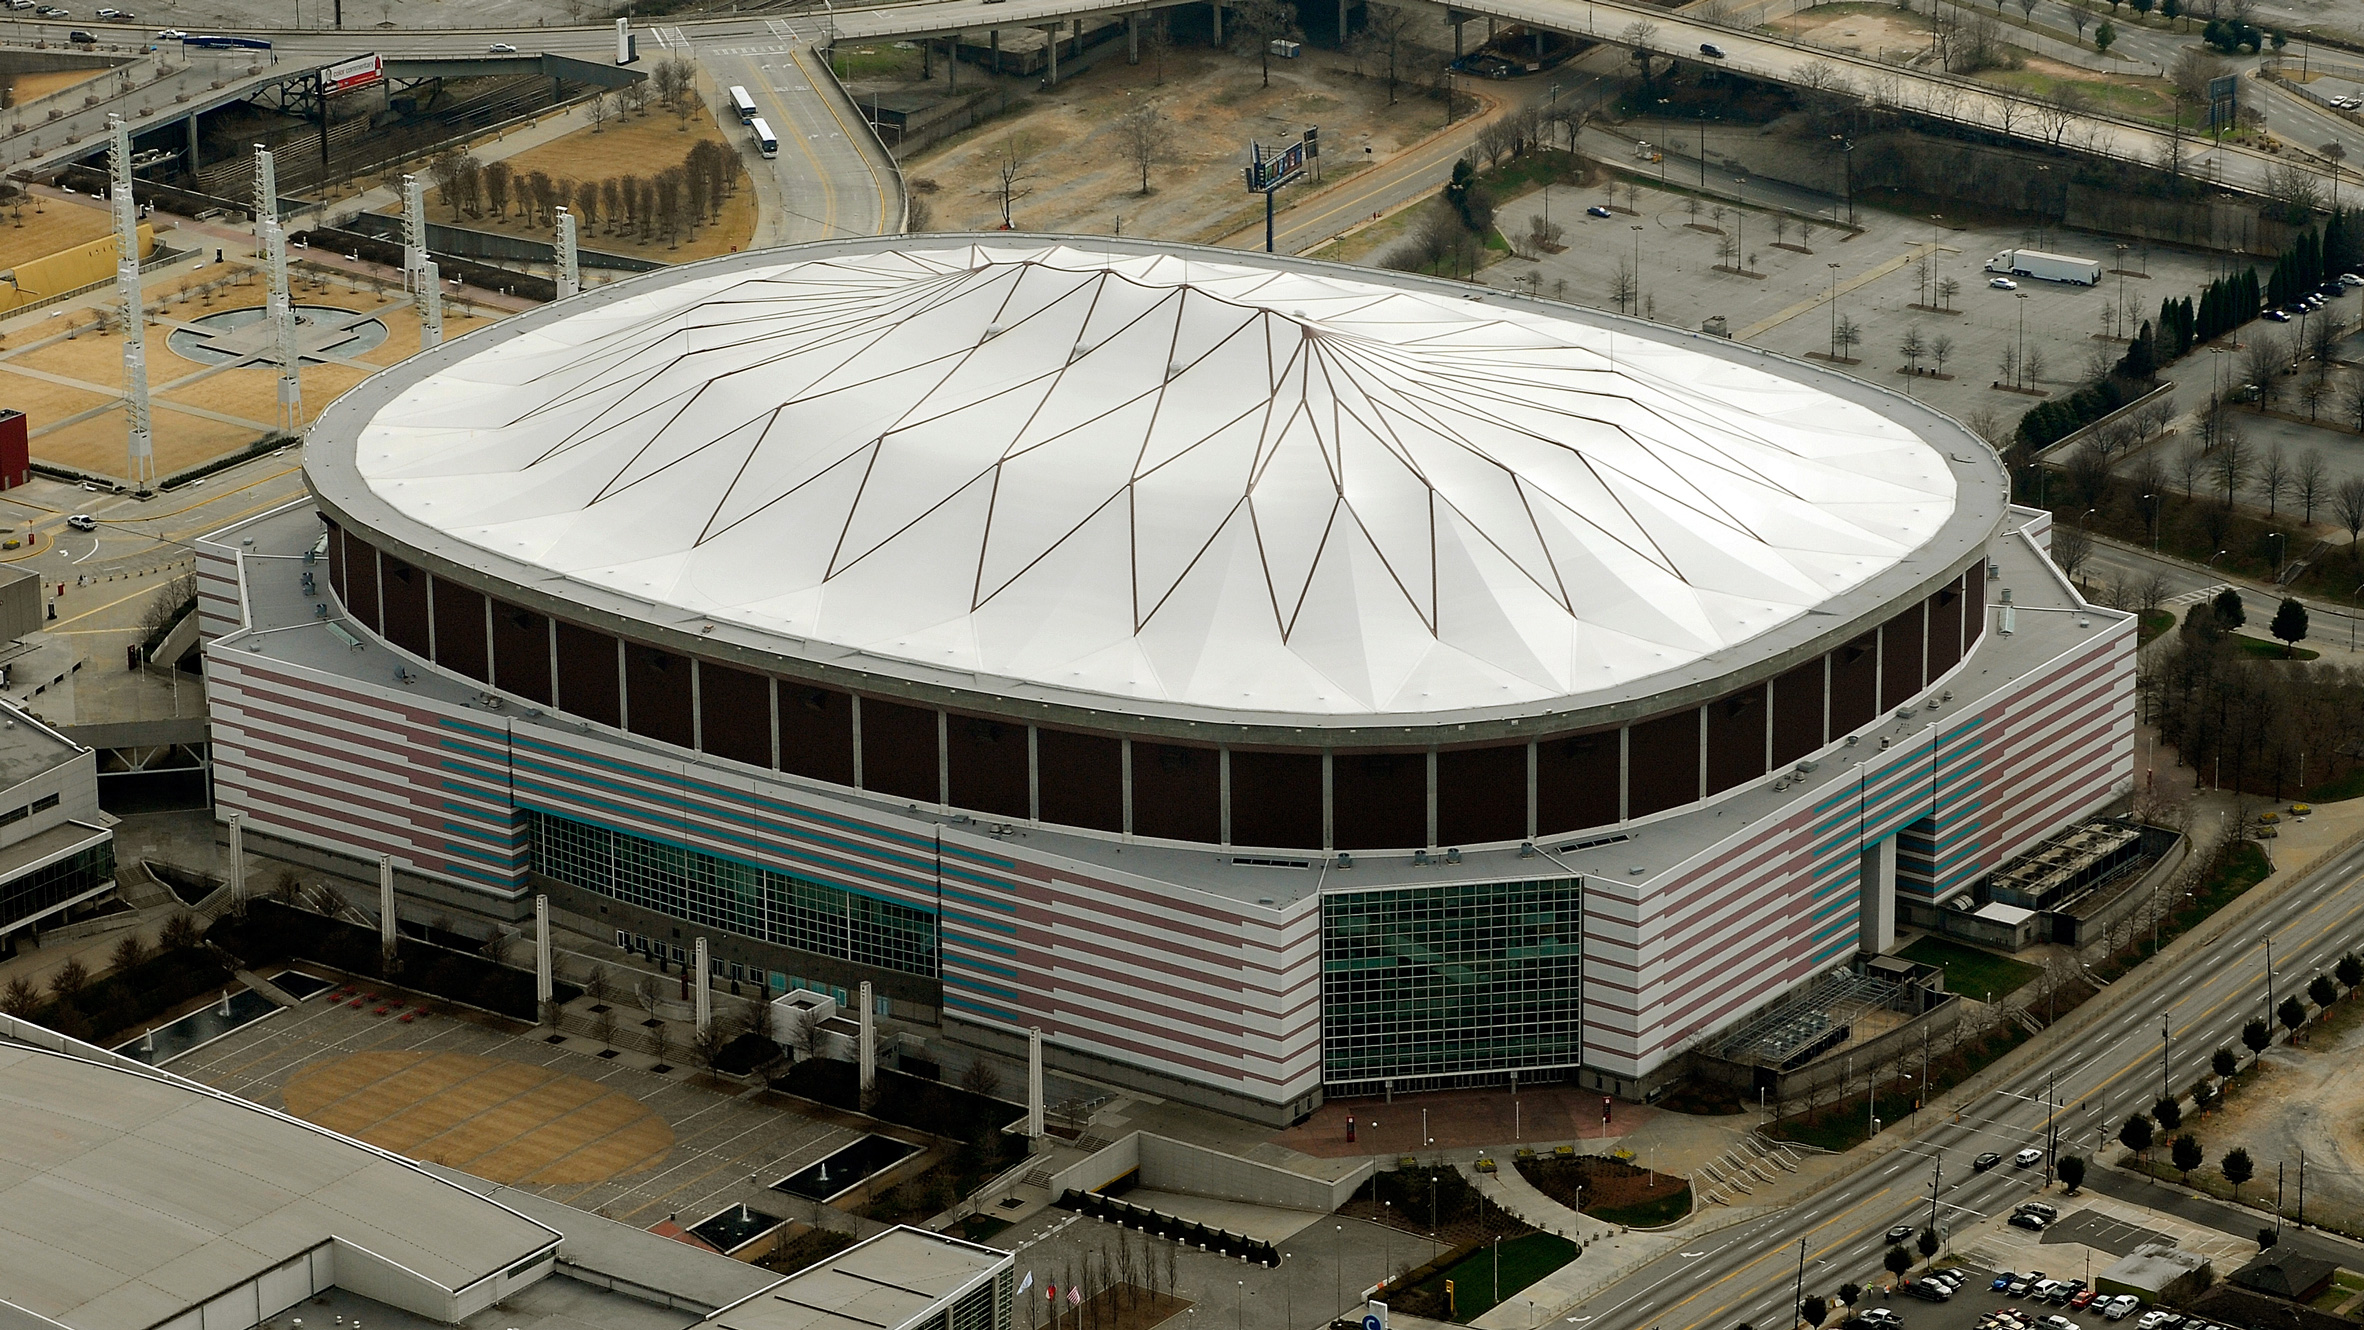 3novices Super Bowl Stadiums Of The Past Present And